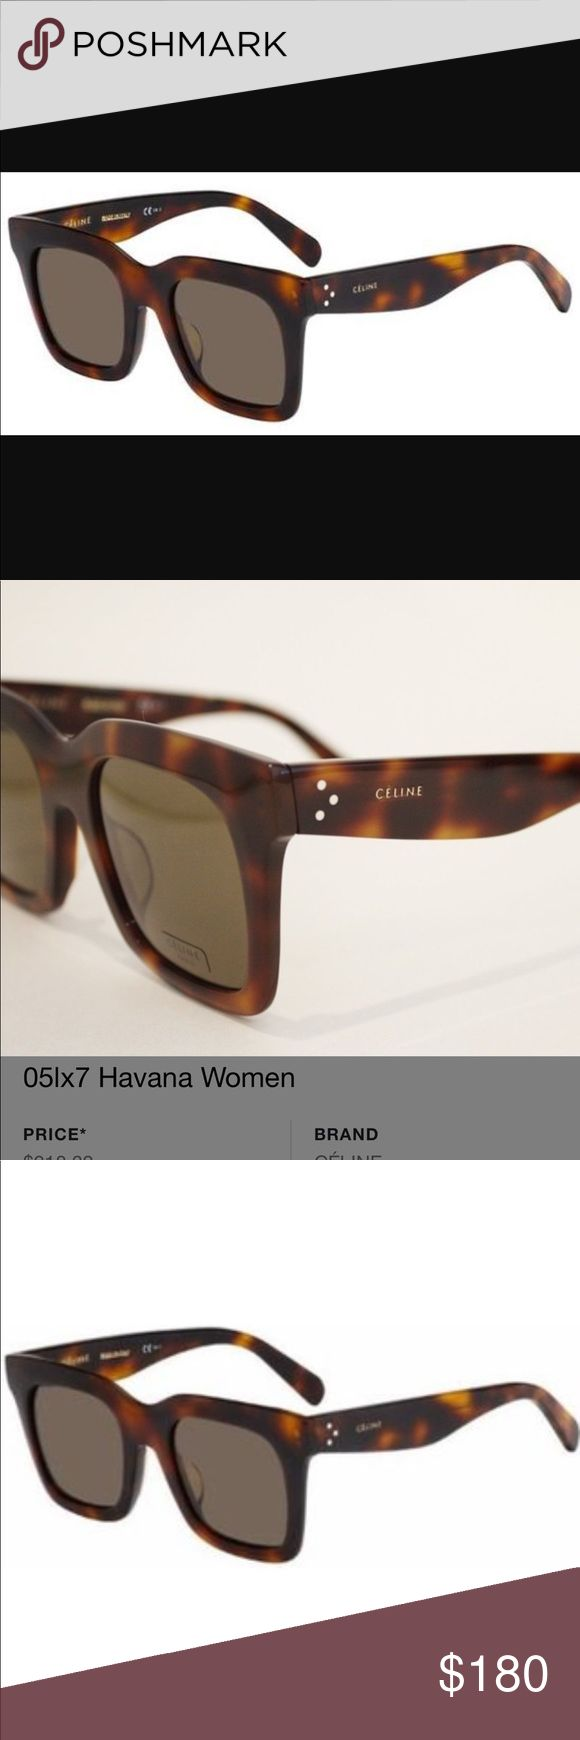 100% authentic Celine's Habana Brown Luca 🕶 20% off only for today ! Ask for your discount!!! Habana Brown asian fit Luca sunglasses Like new , used probably one time! Beautiful color, oversized ones !! Come with authenticity card and pouch and cleaning cloth!! Celine Accessories Sunglasses